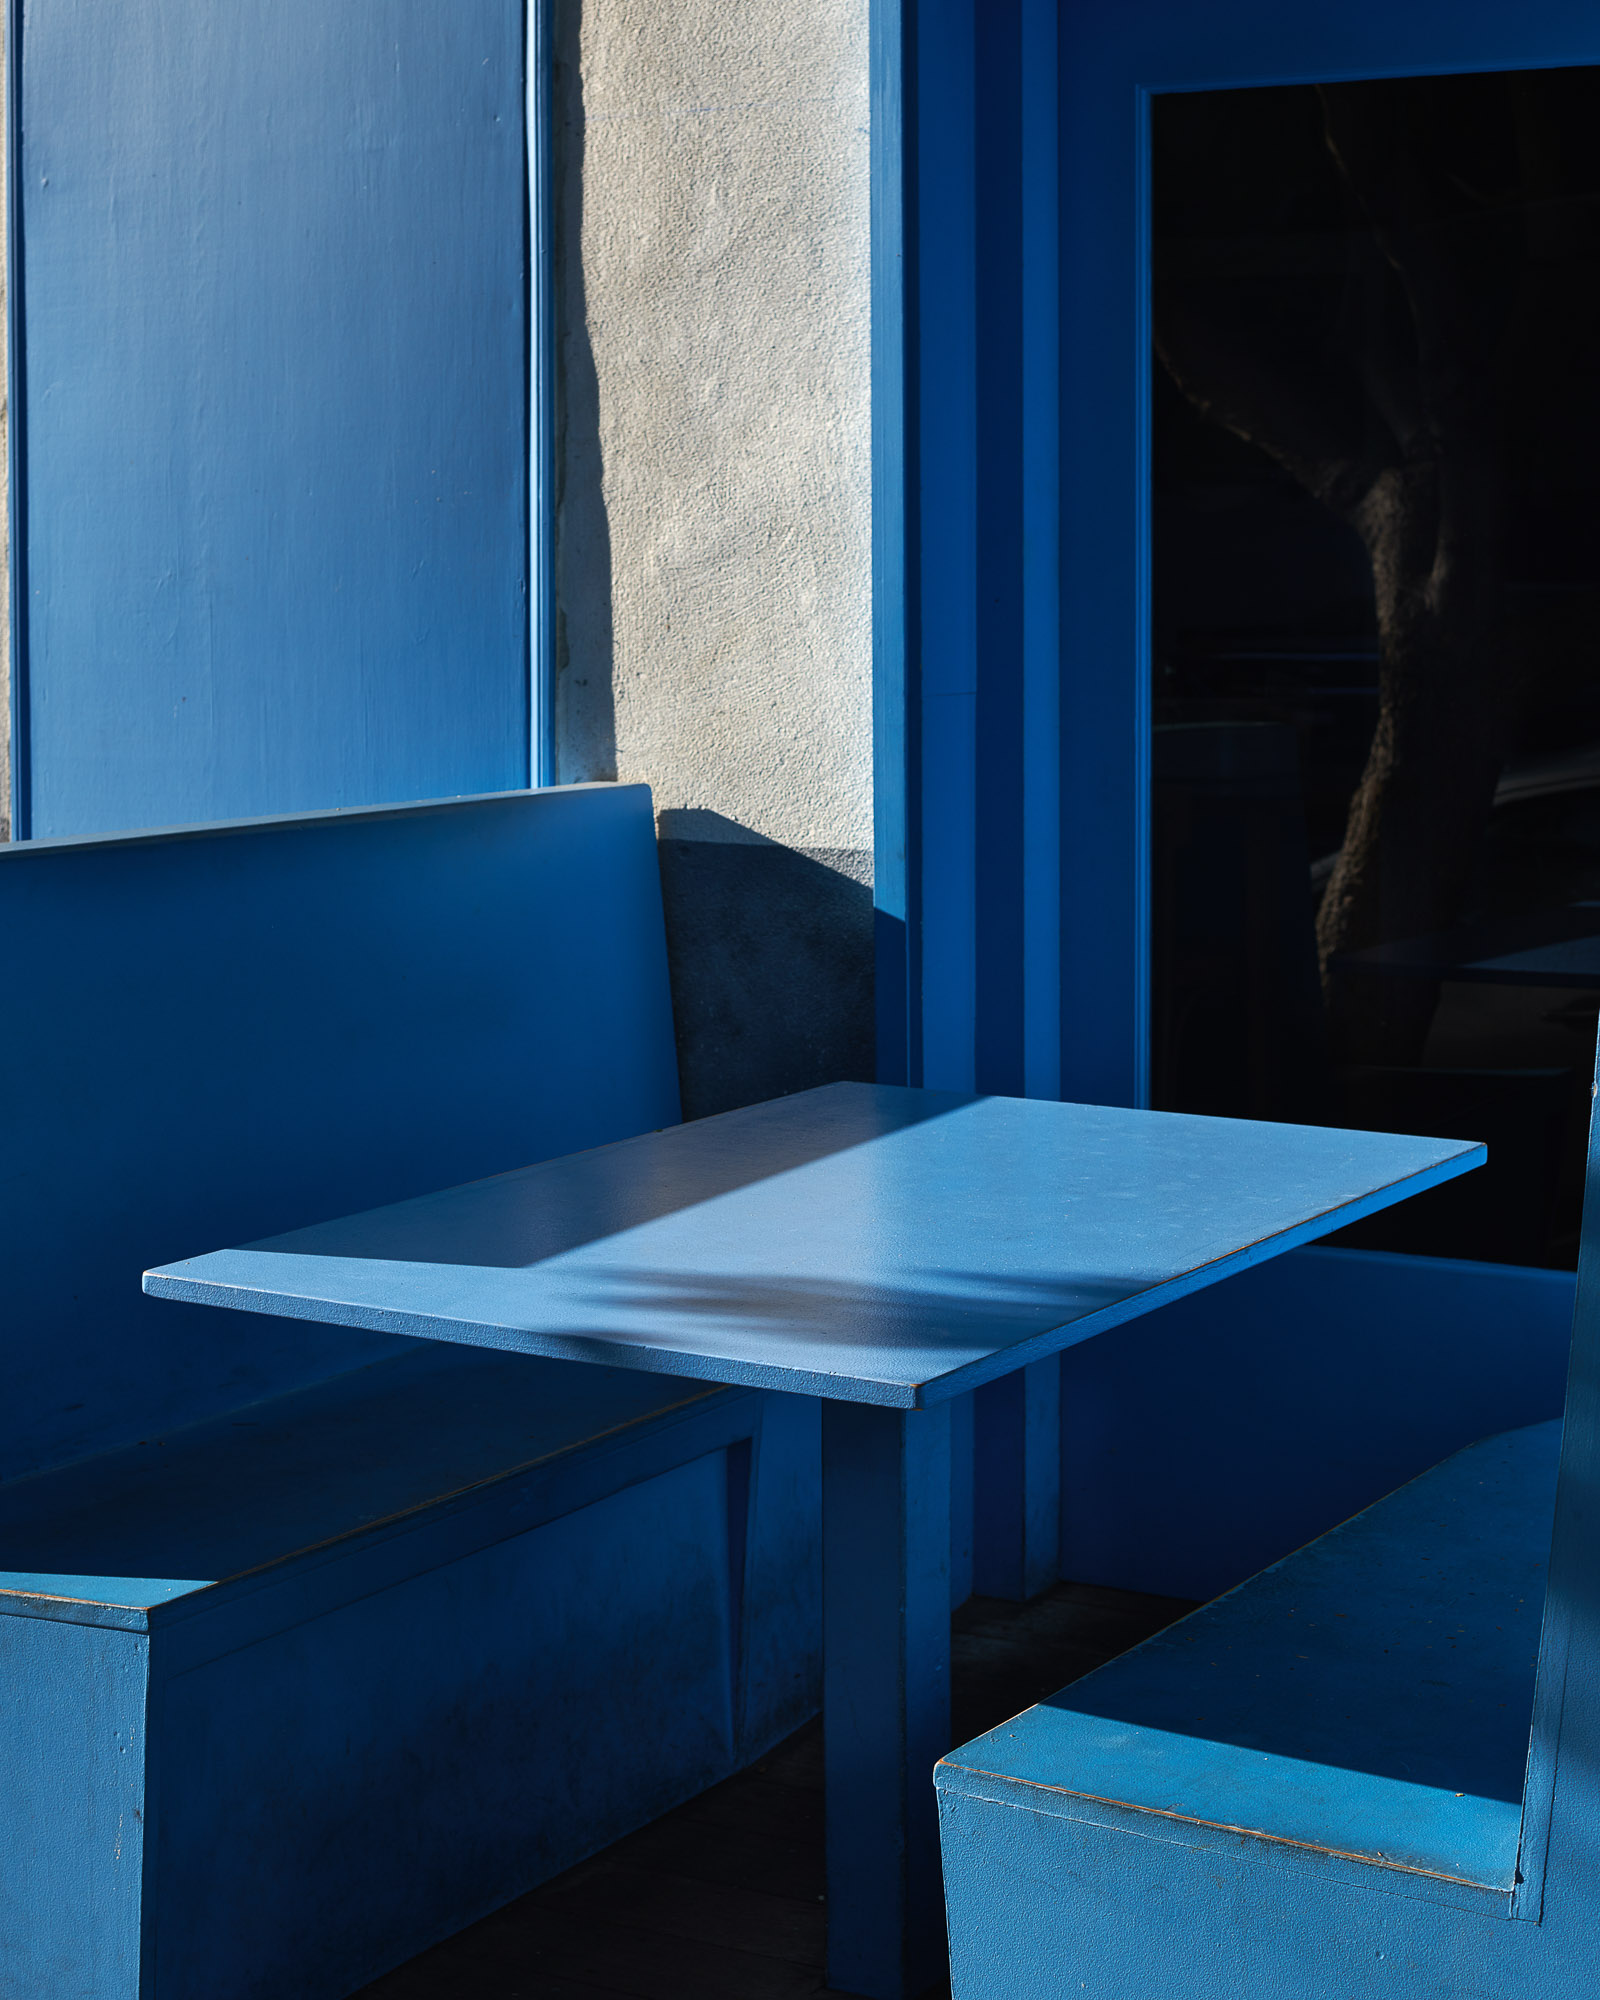 Blue Table Exterior San Francisco